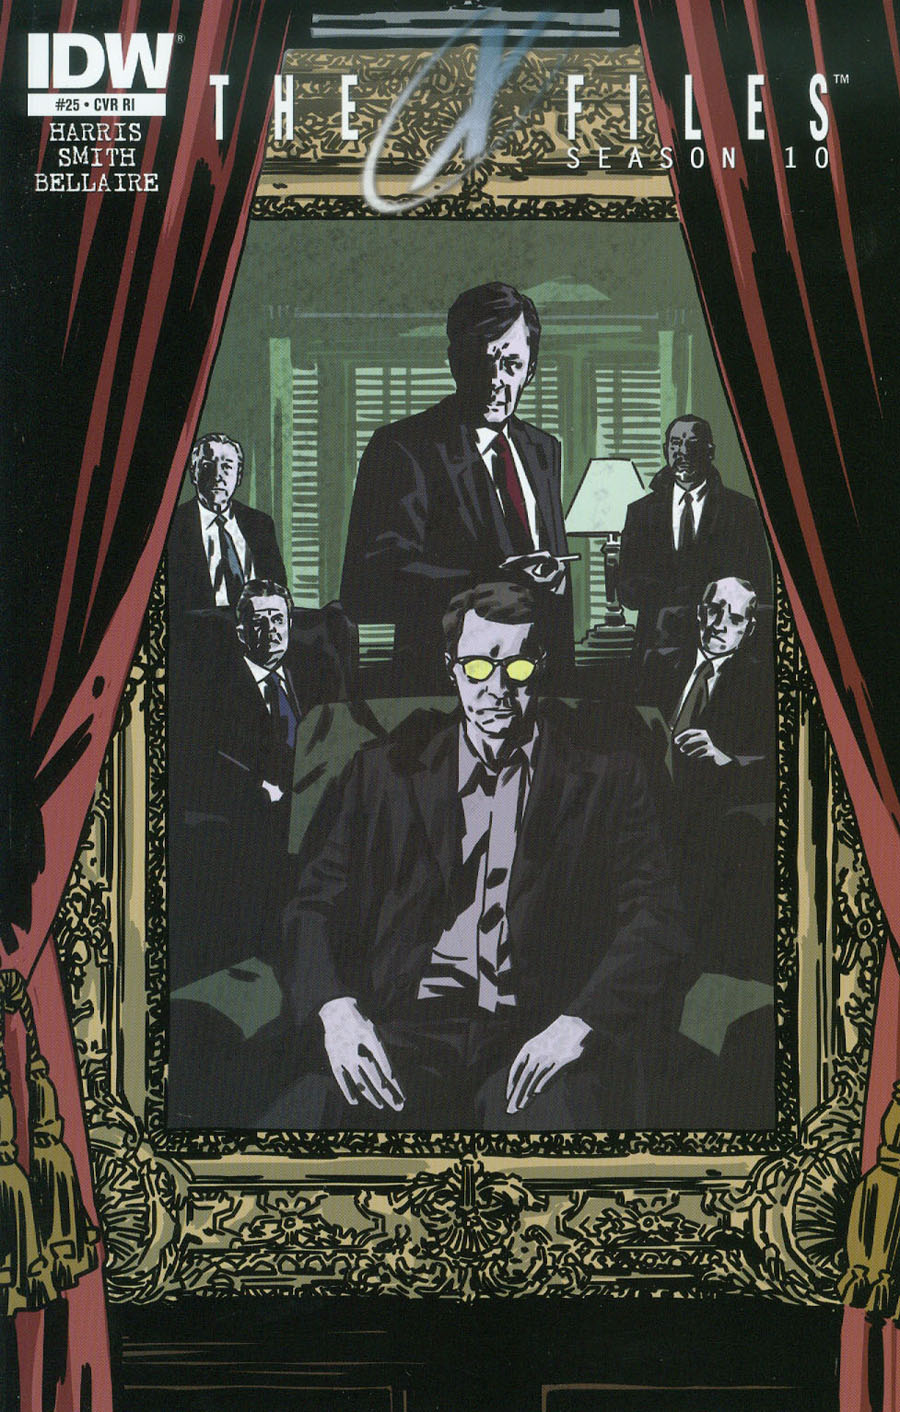 X-Files Season 10 #25 Cover C Incentive Matthew Dow Smith Variant Cover